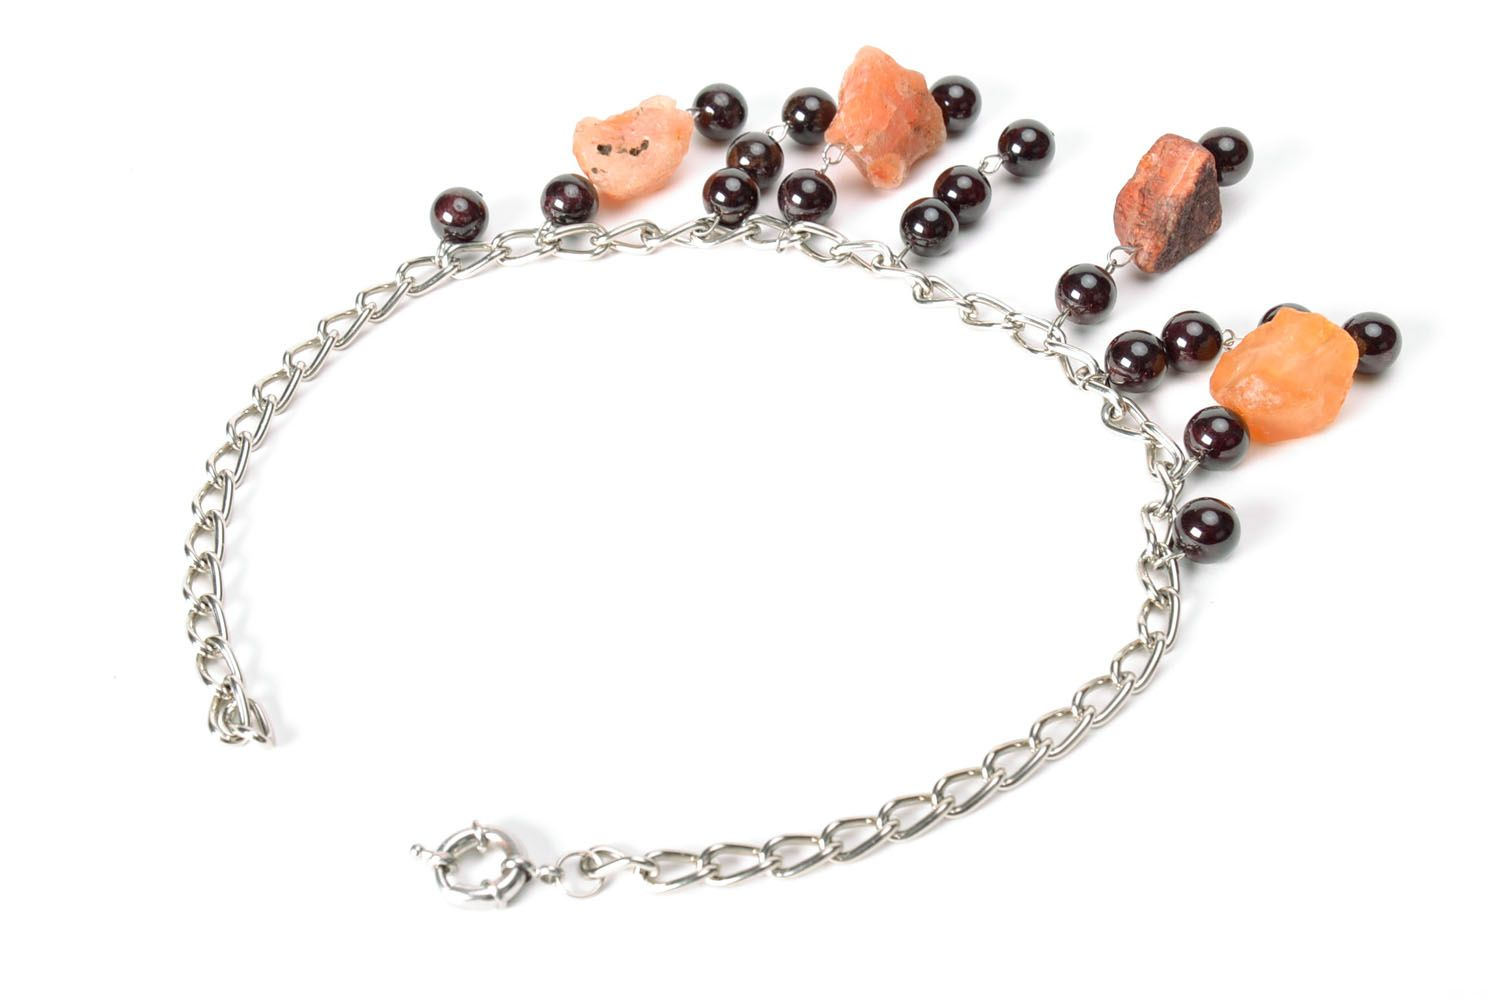 Fashionable necklace with natural stones photo 3